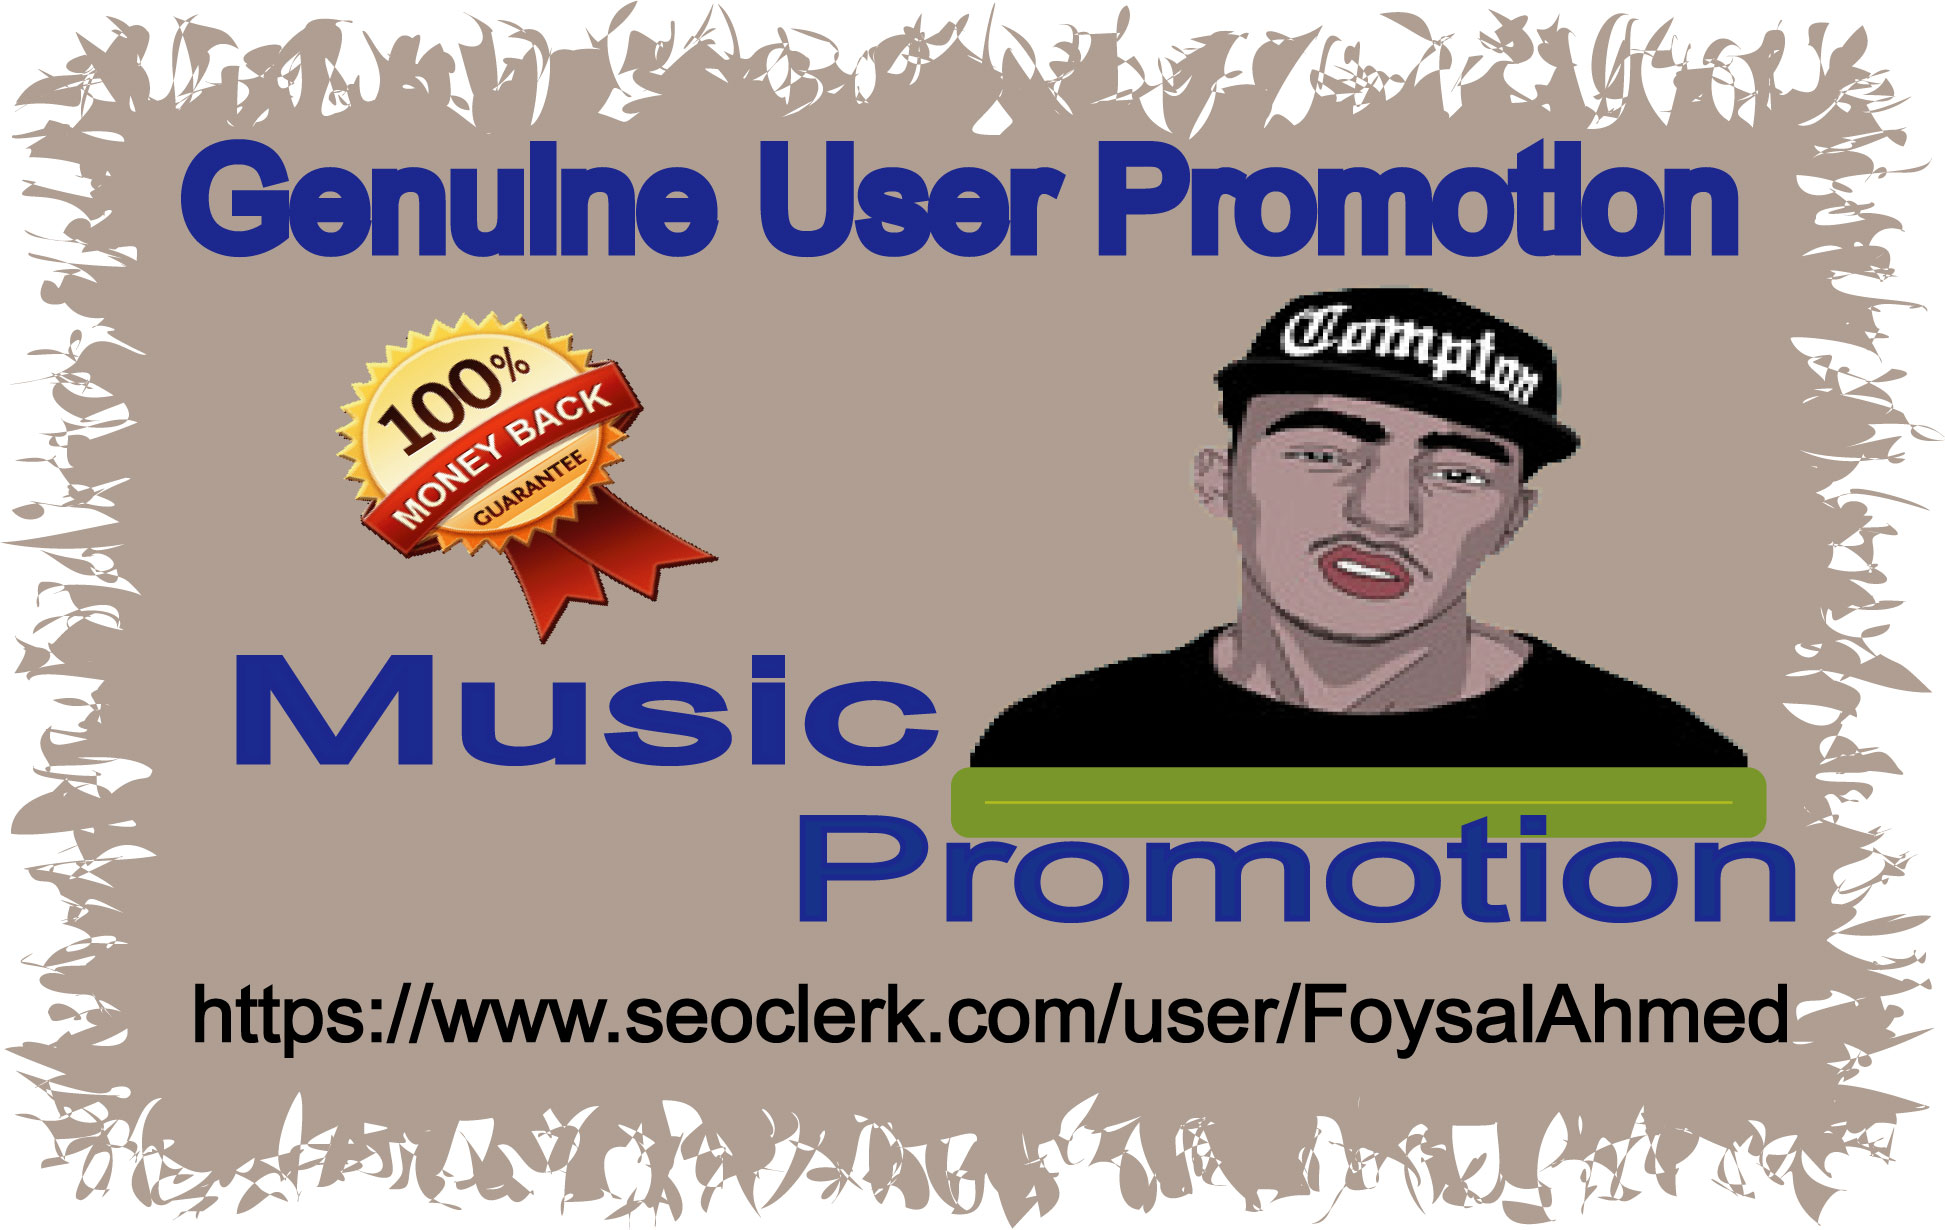 Music-Promotion-125K-Music-Listening-amp-250-amp-150-Other-Promotion-For-Your-Song